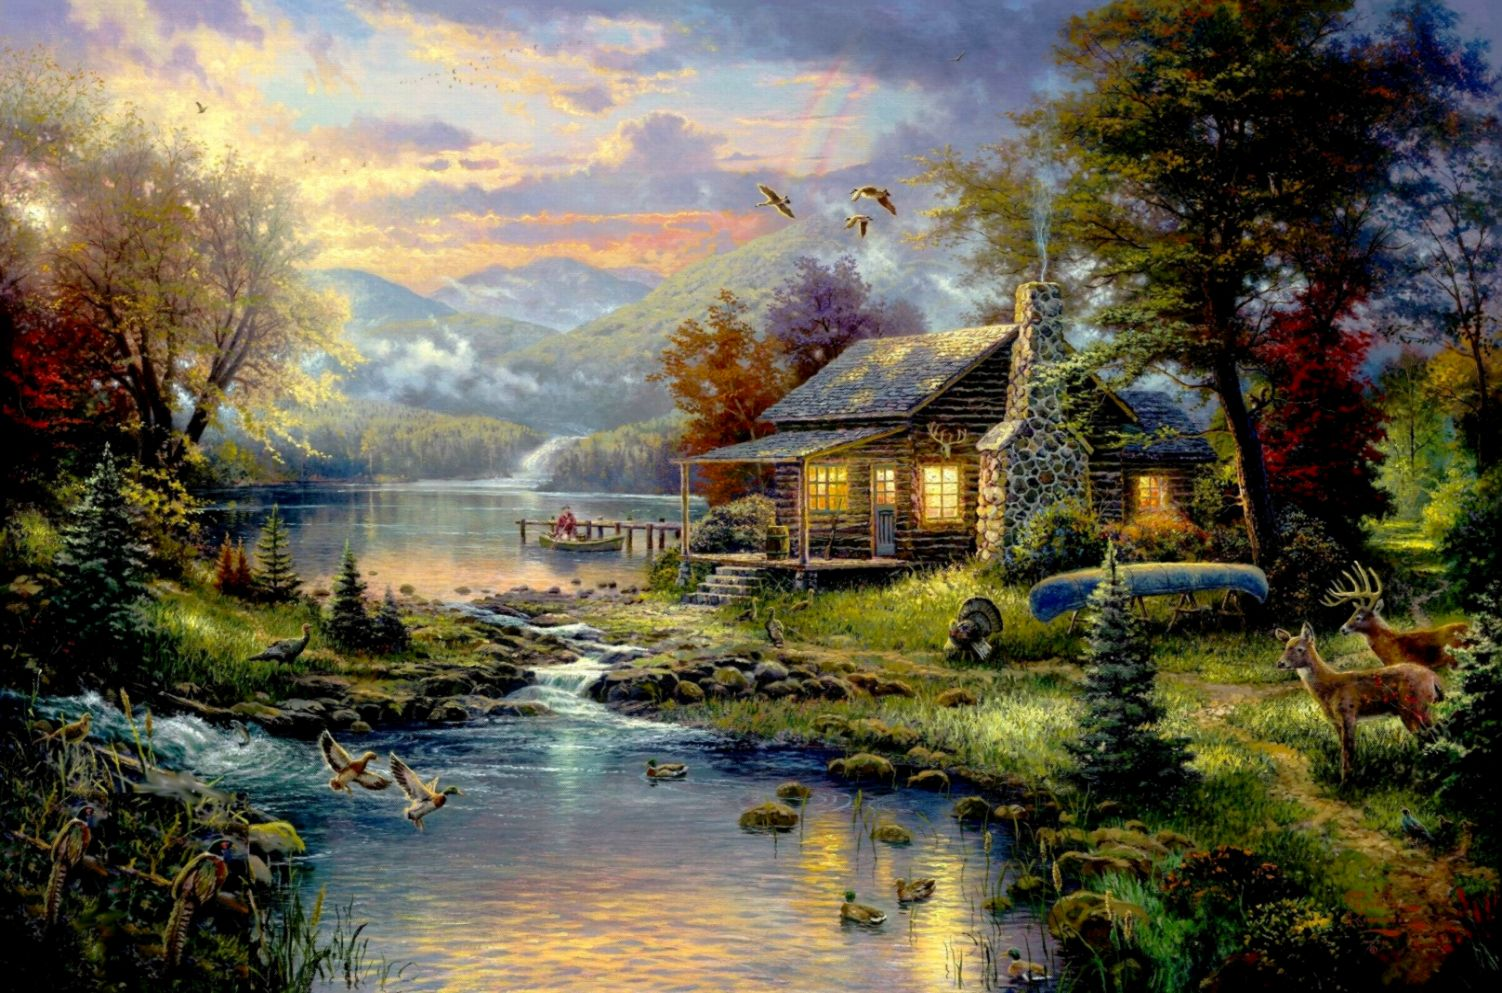 Thomas Kinkade Wallpaper All in One Wallpapers 1502x993